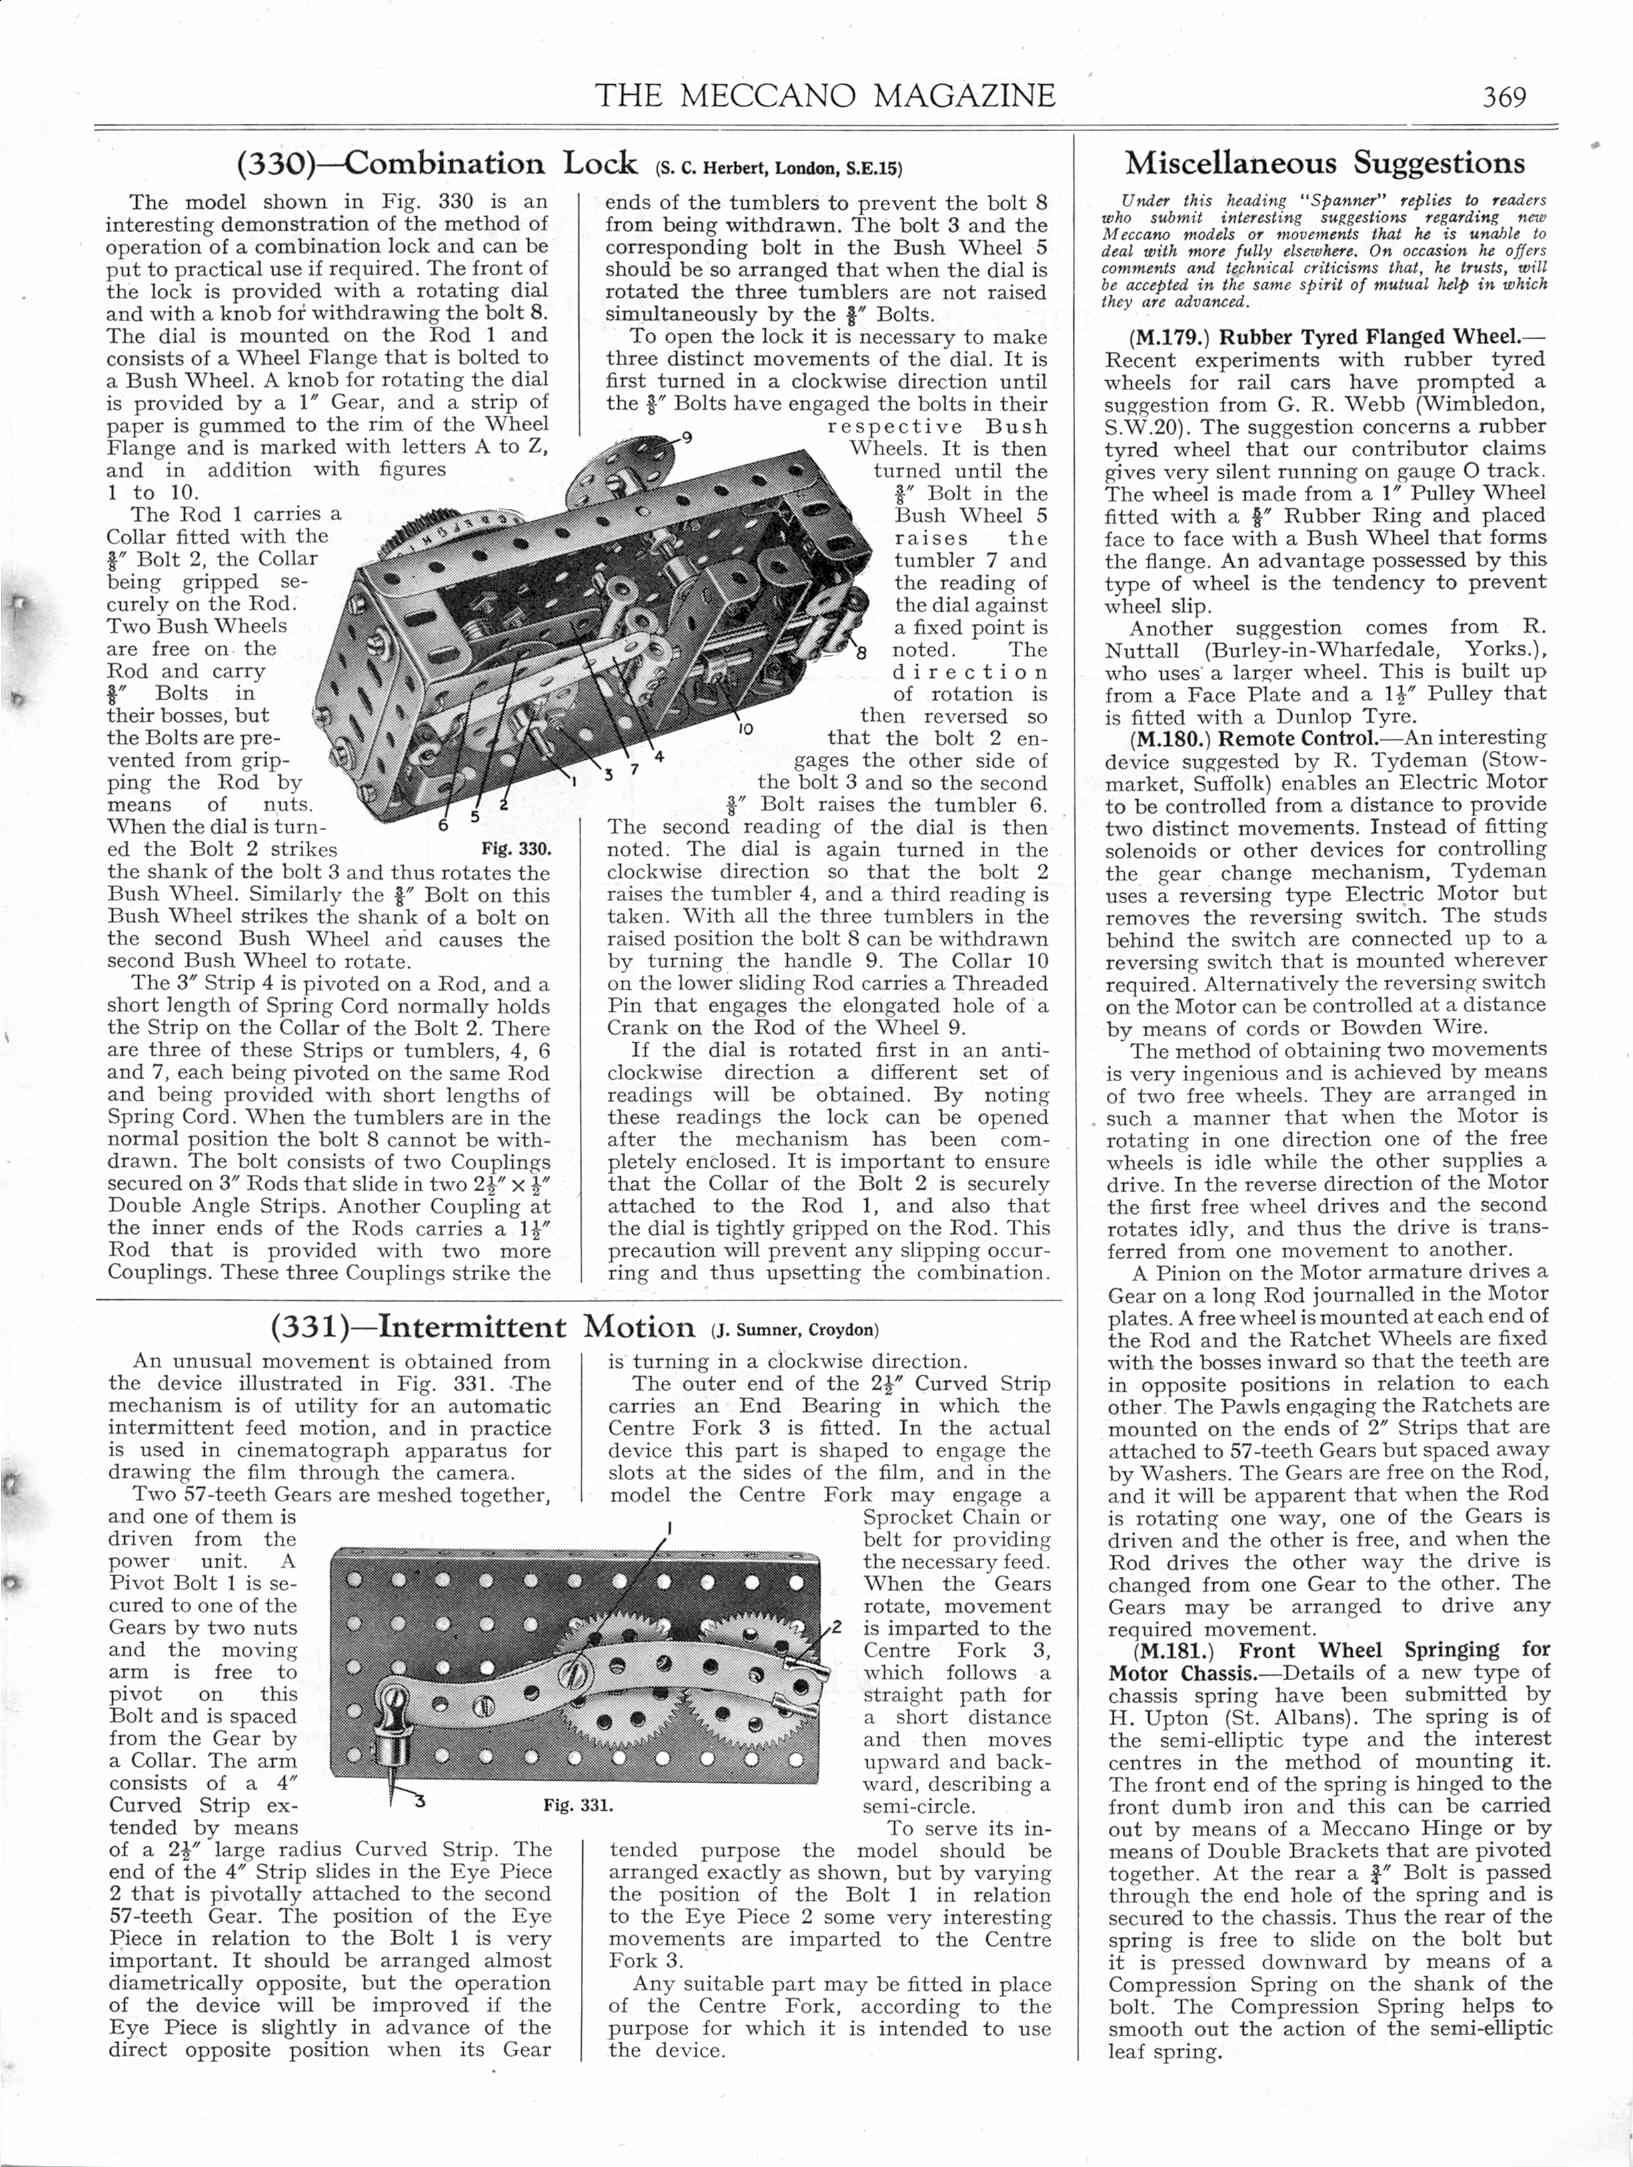 UK Meccano Magazine June 1935 Page 369